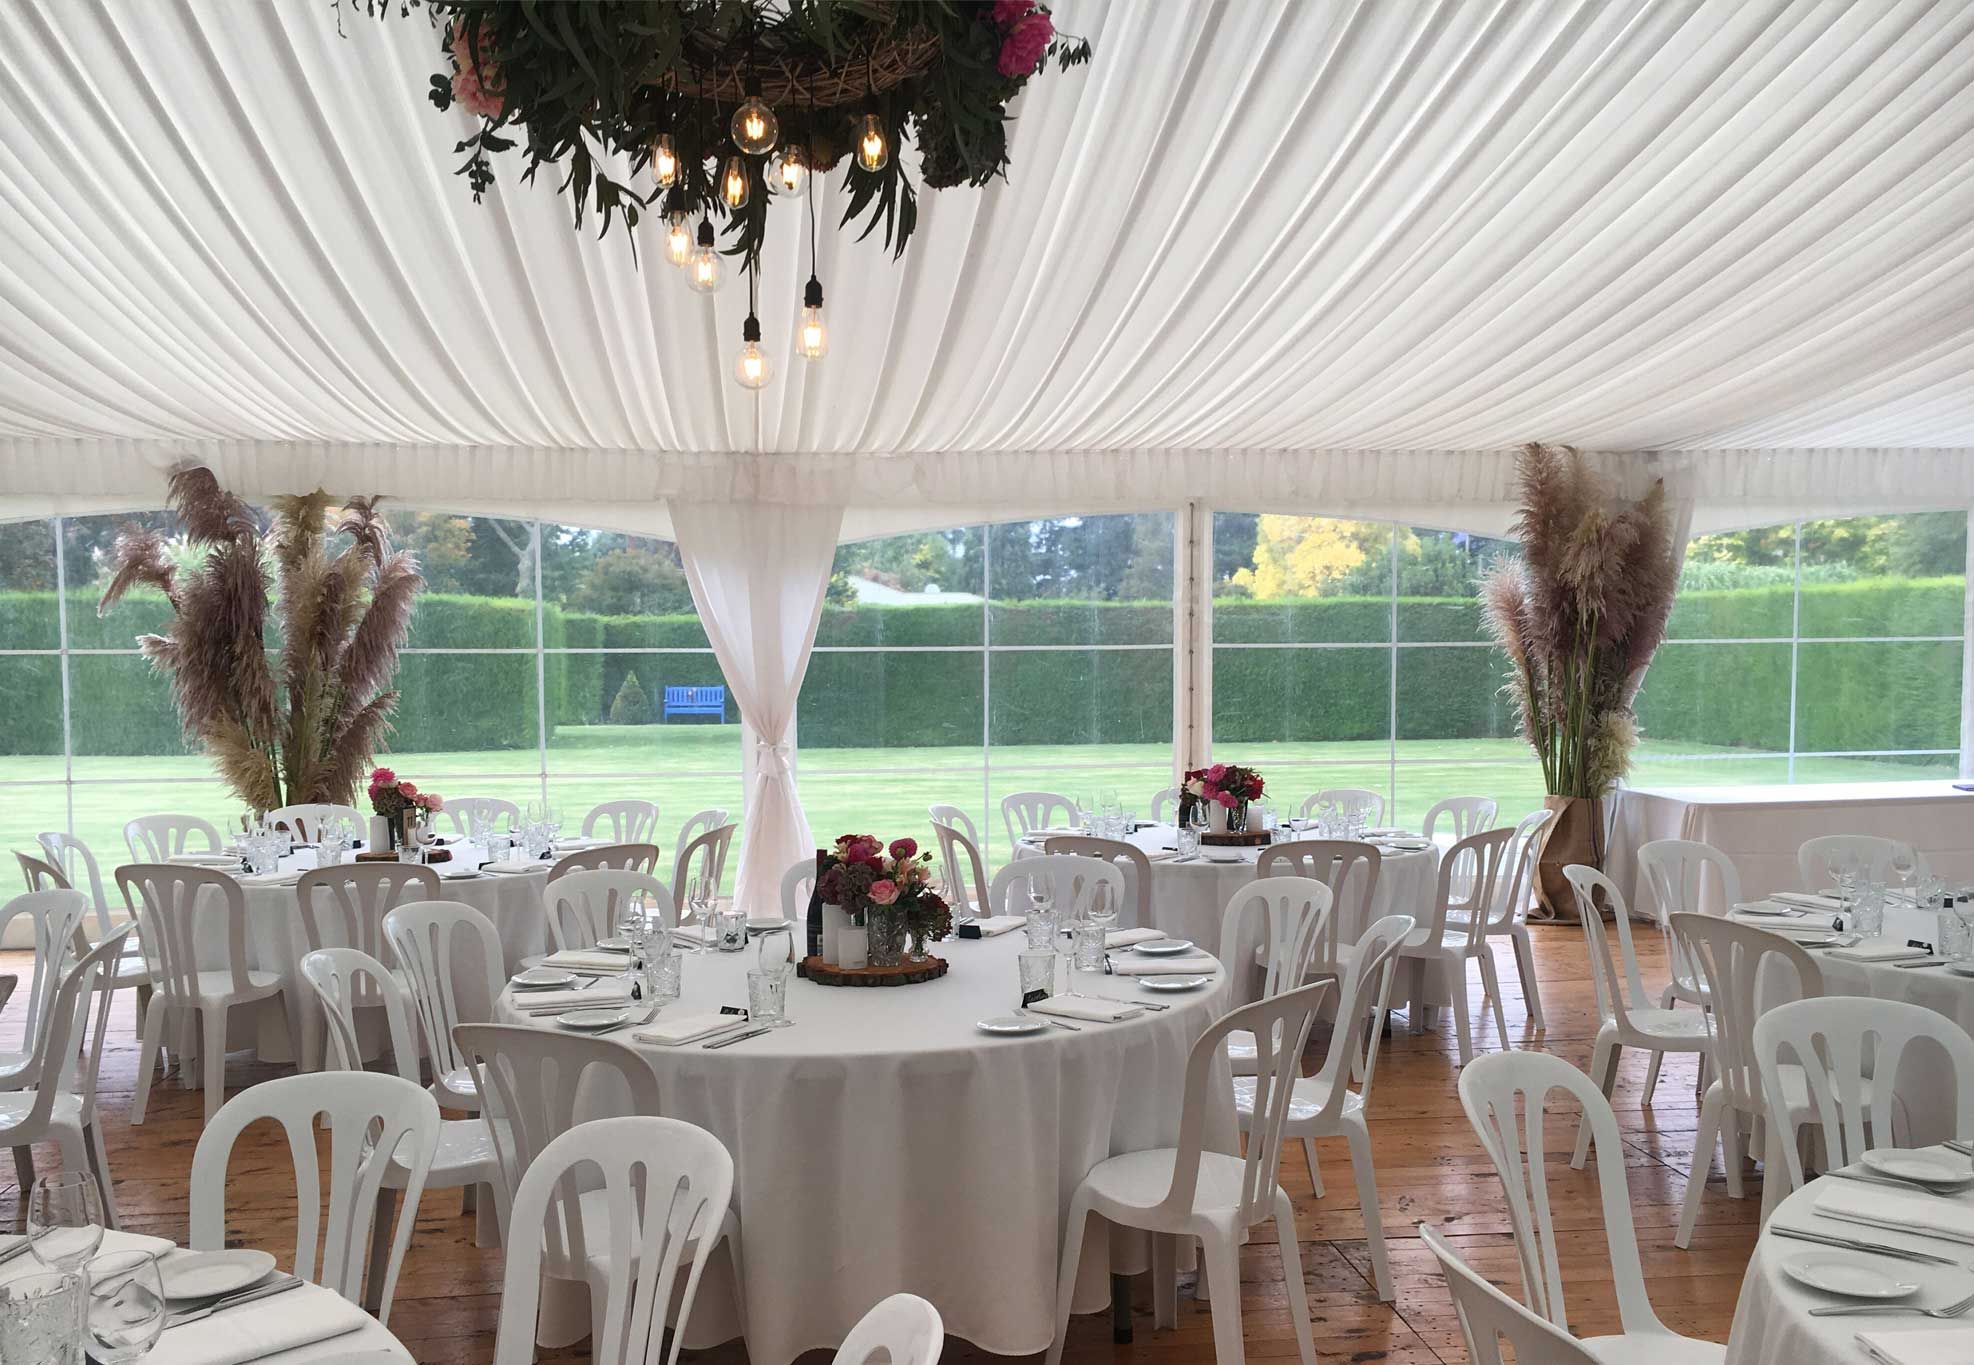 silk-estate-marquee-weddings-and-events-styling-and-hire-milano-chair-1